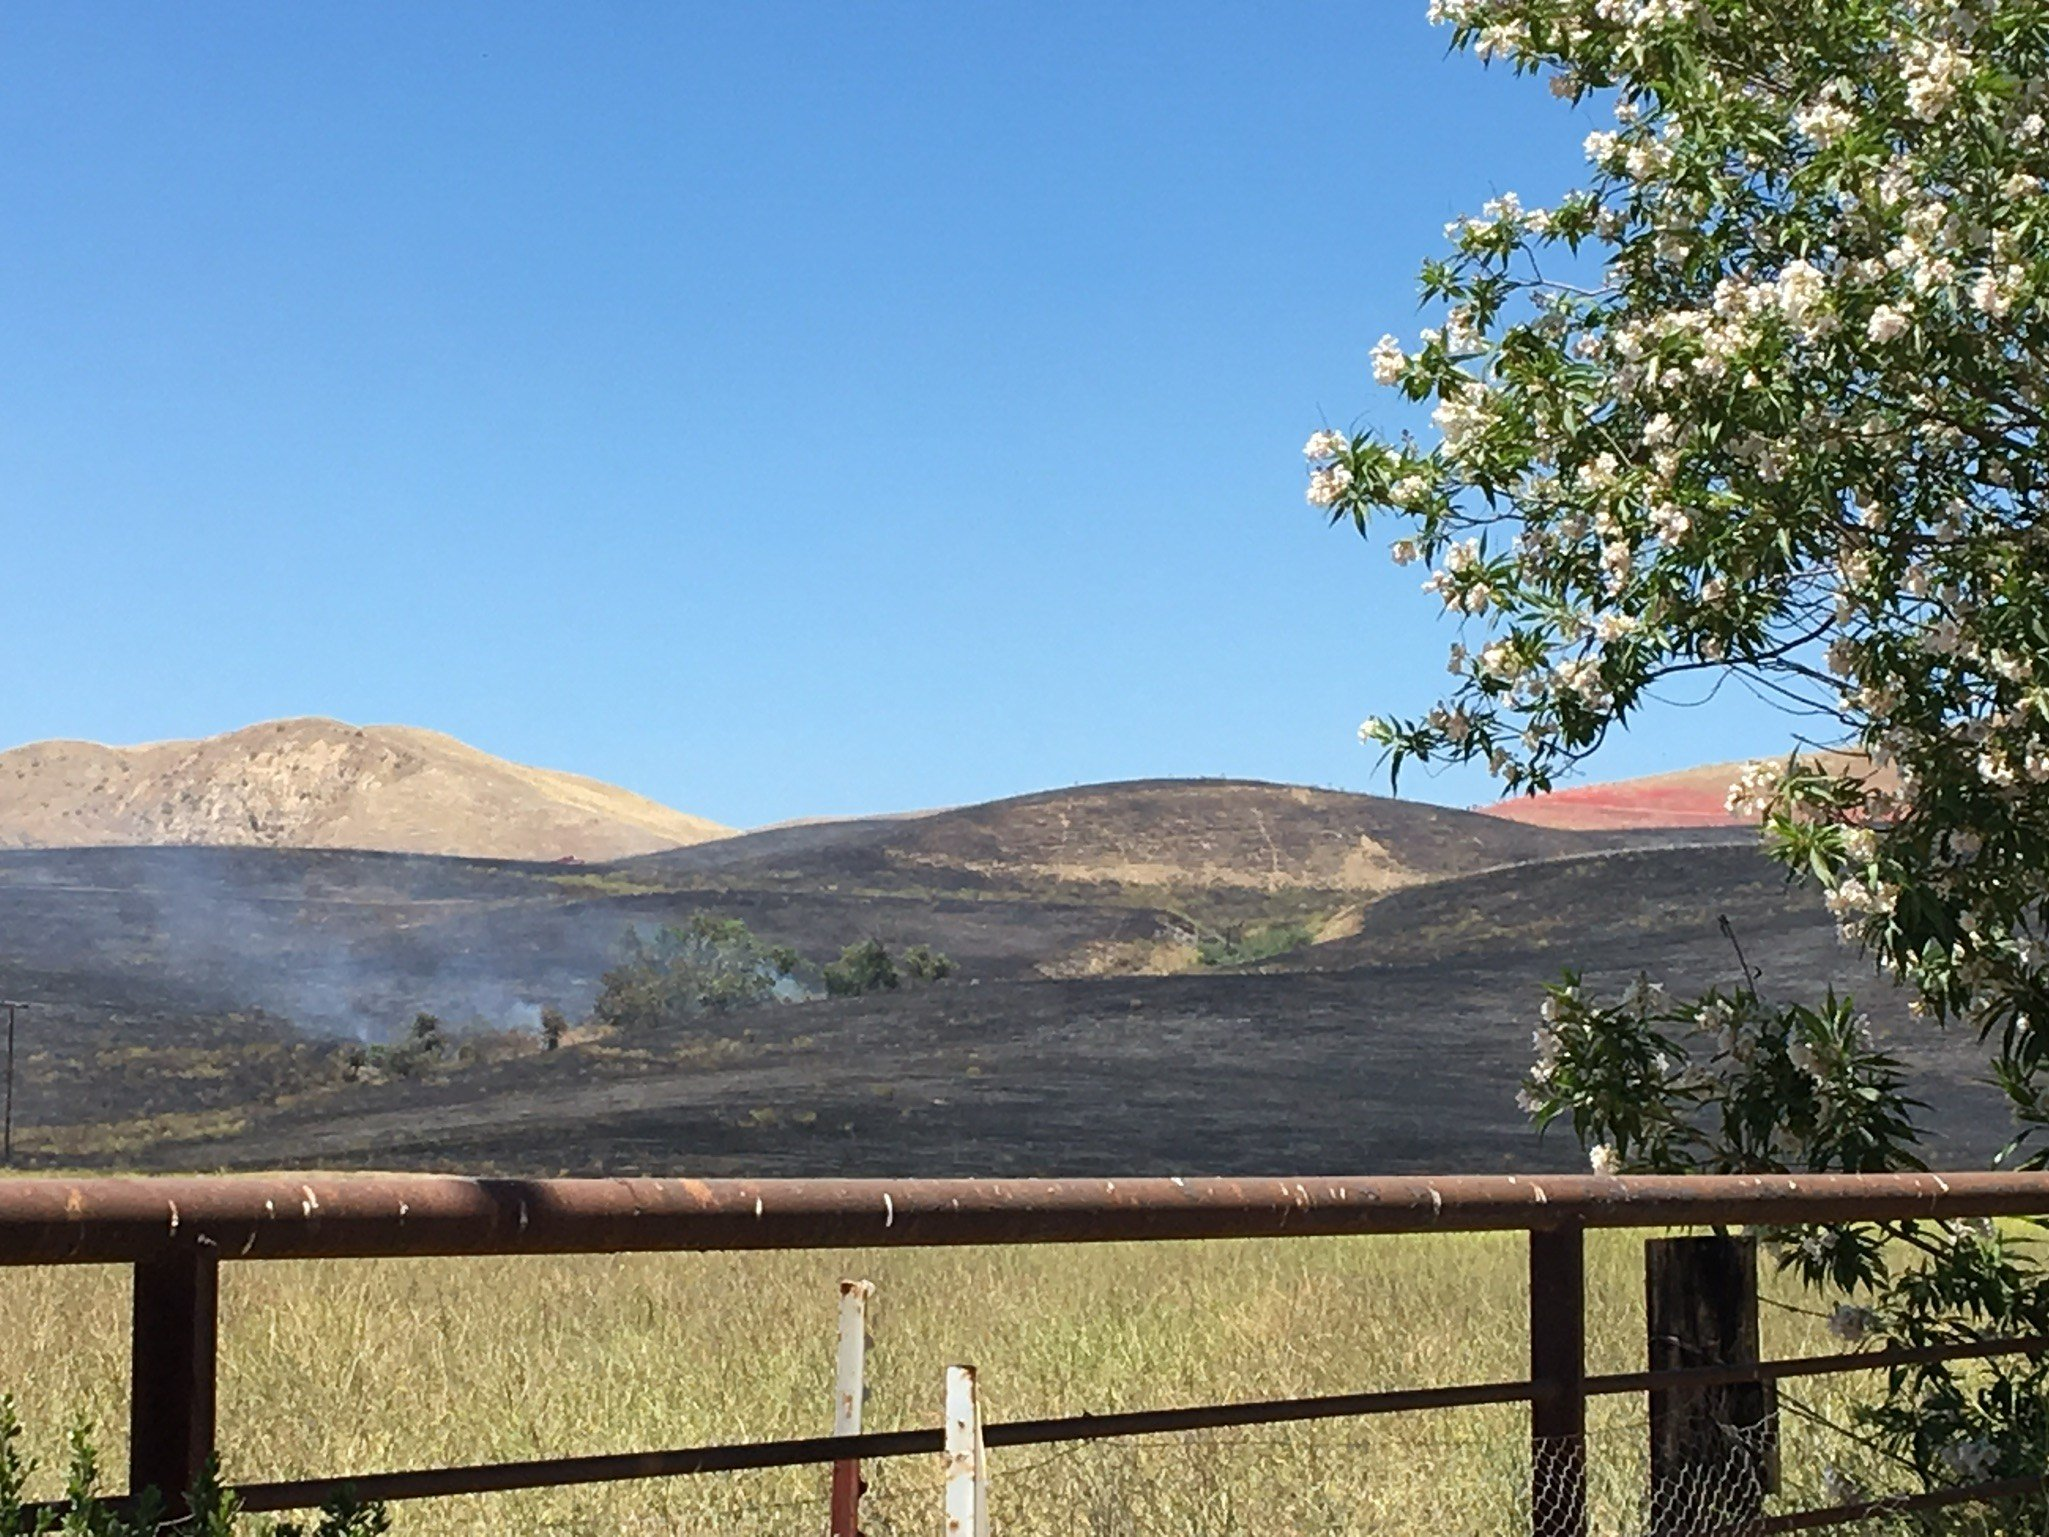 Lucy Fire near Shandon (KSBY photo)